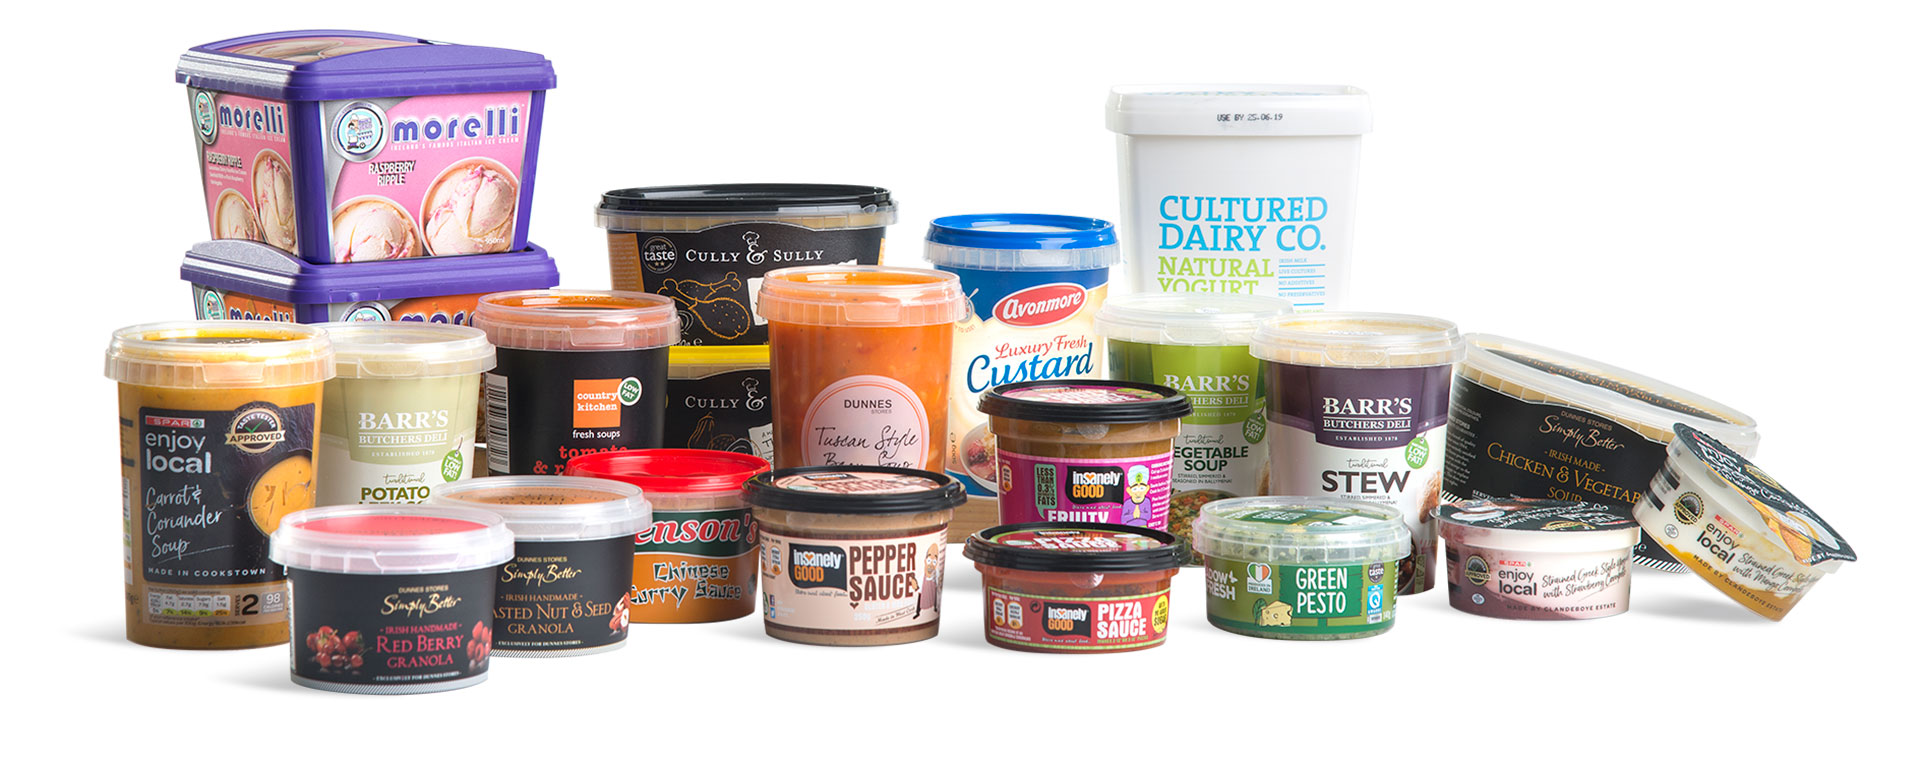 Corcoran Products Packaging in mould labelling containers